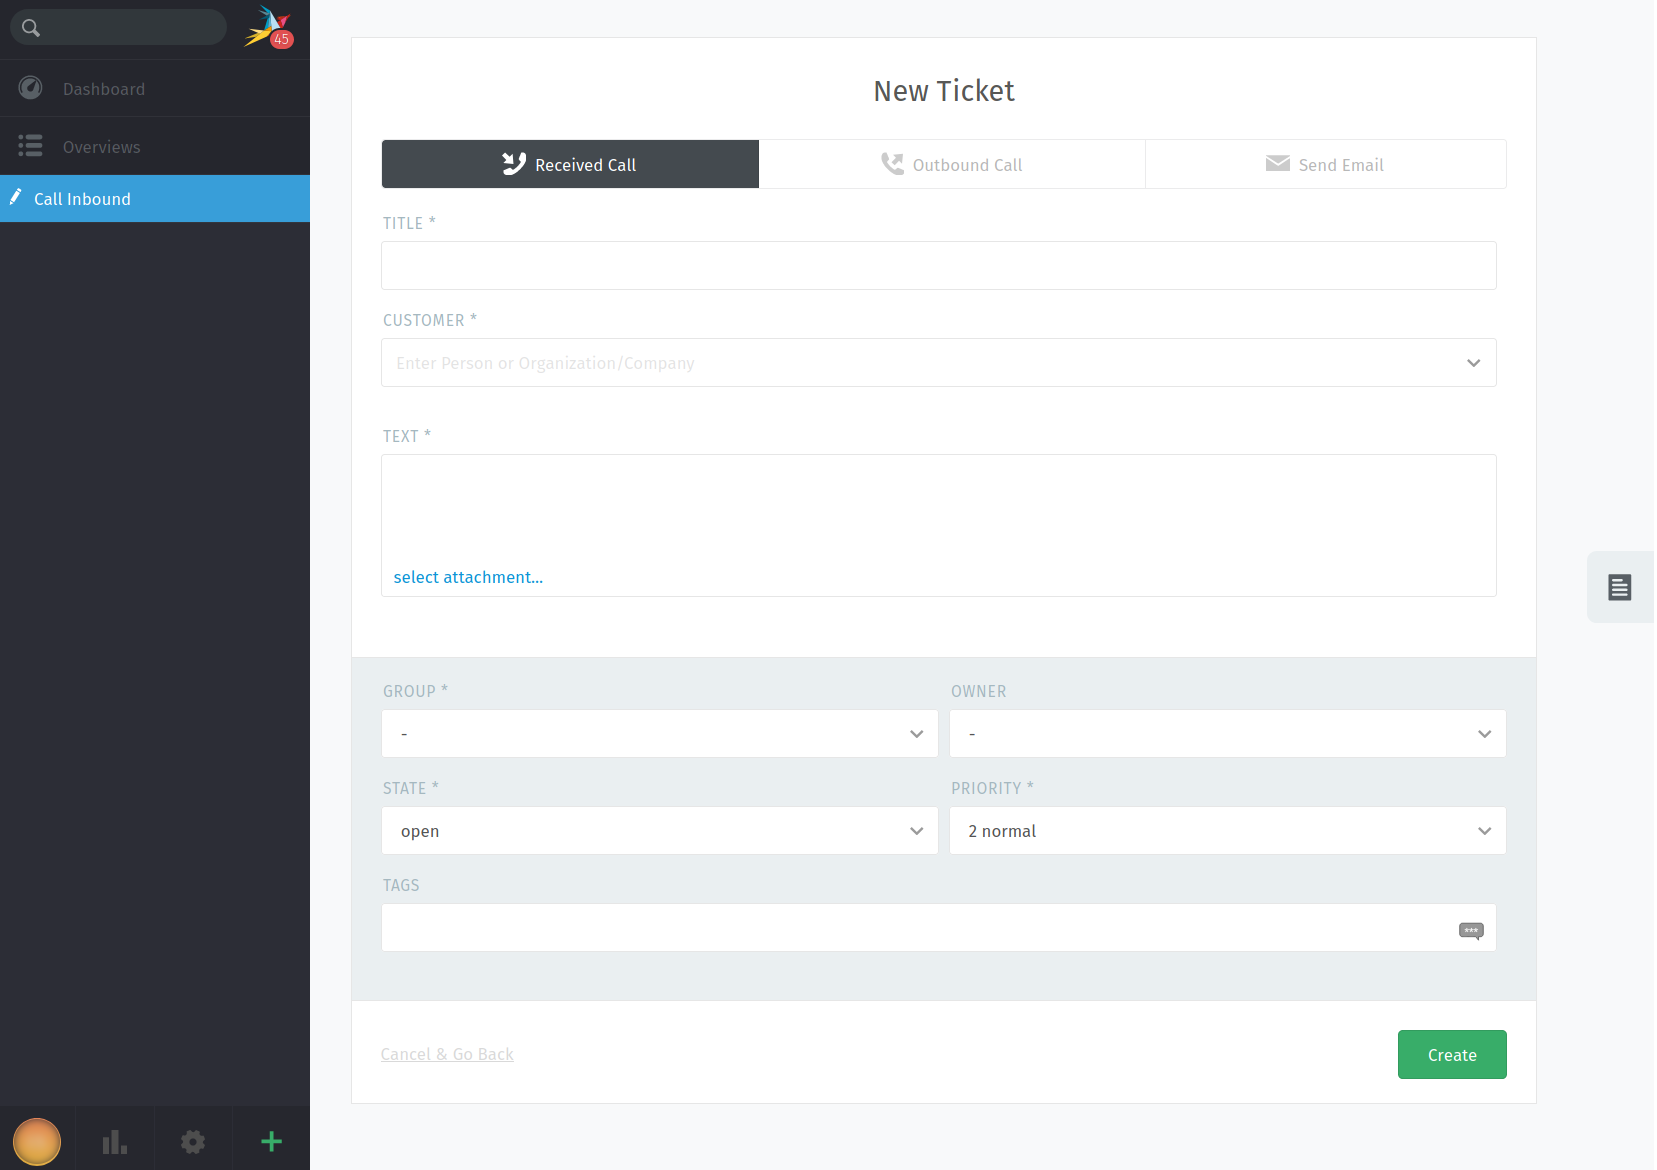 Creating a new ticket from inside CDR Link